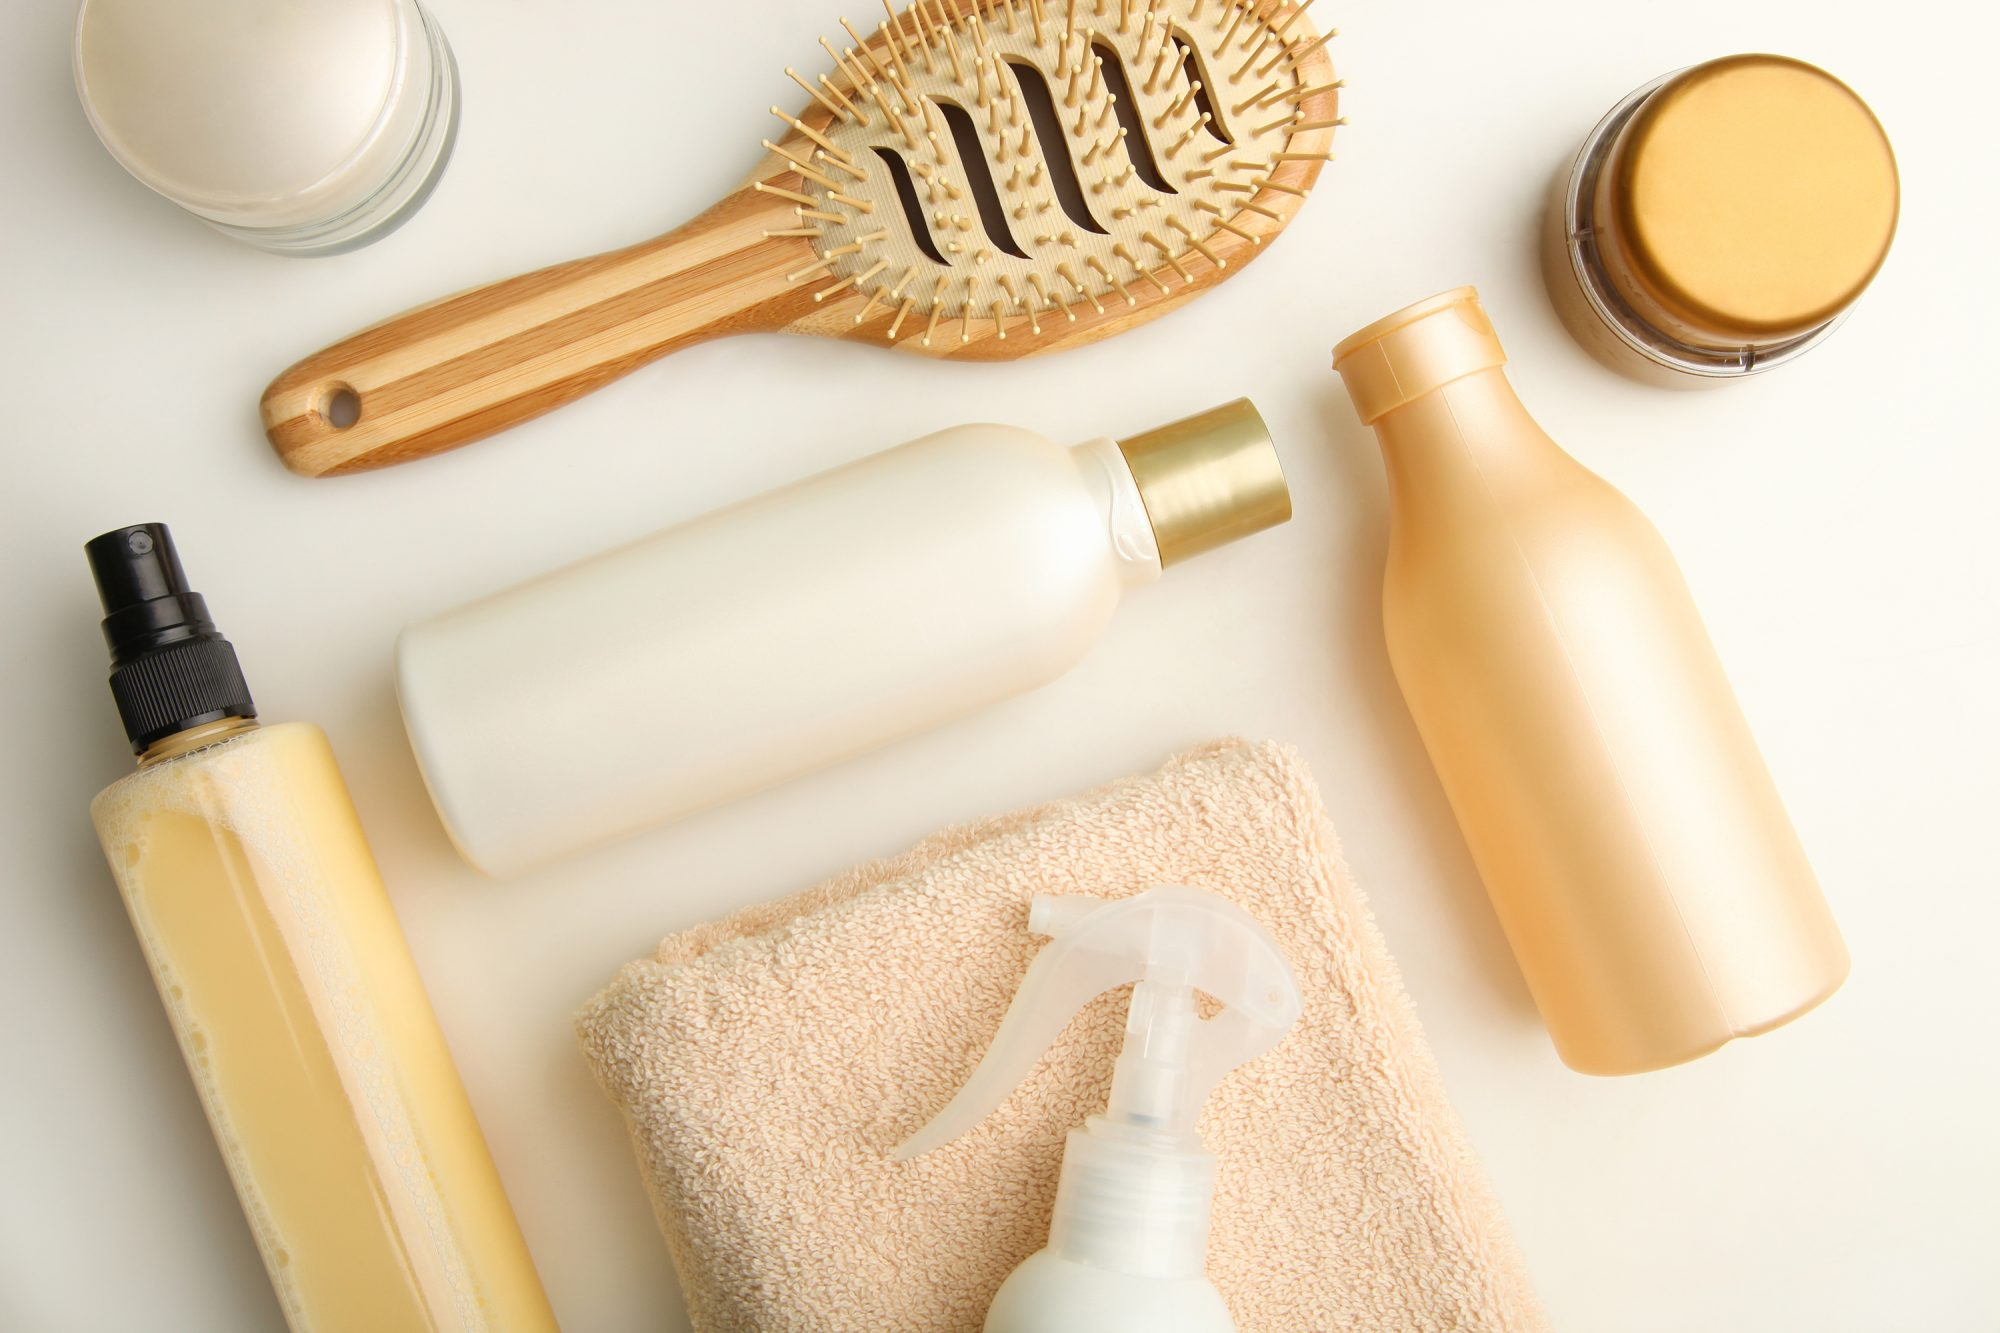 Set of hair care products